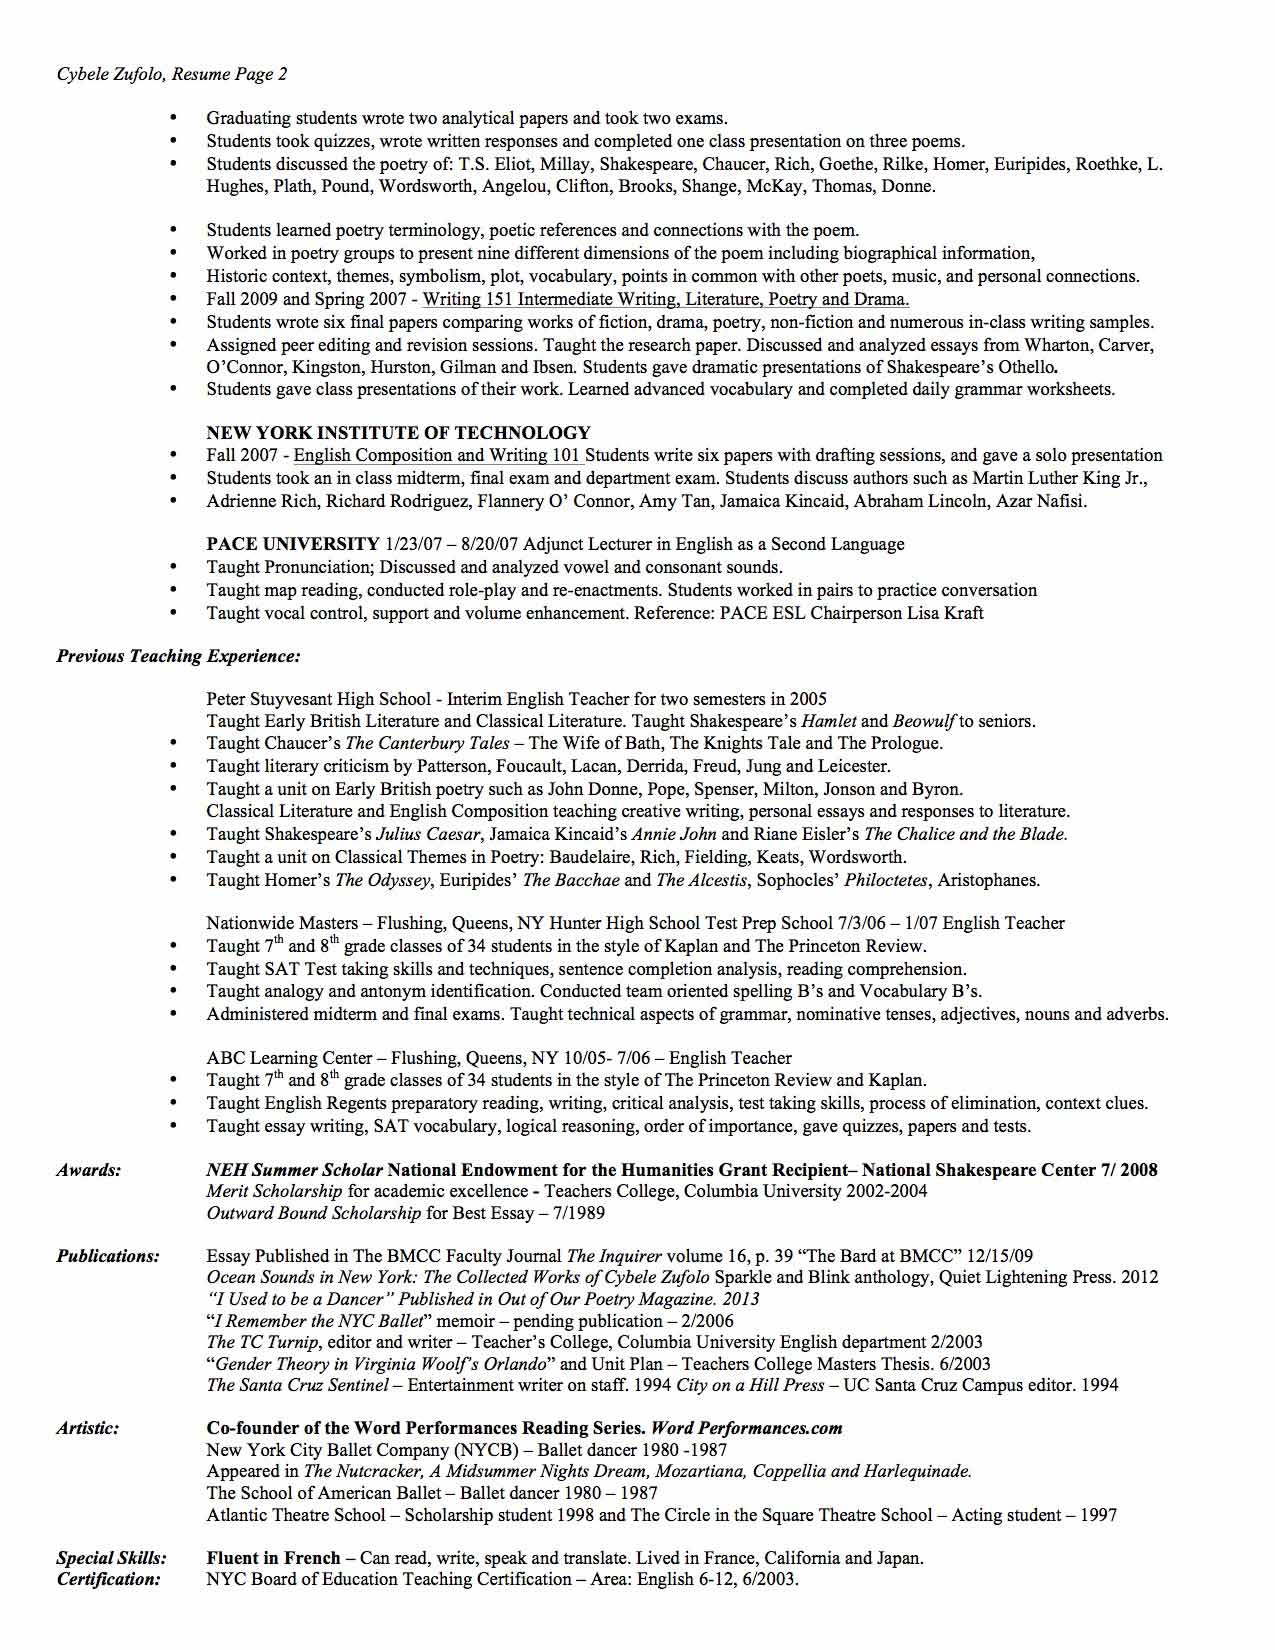 Resume - Teaching Pg2